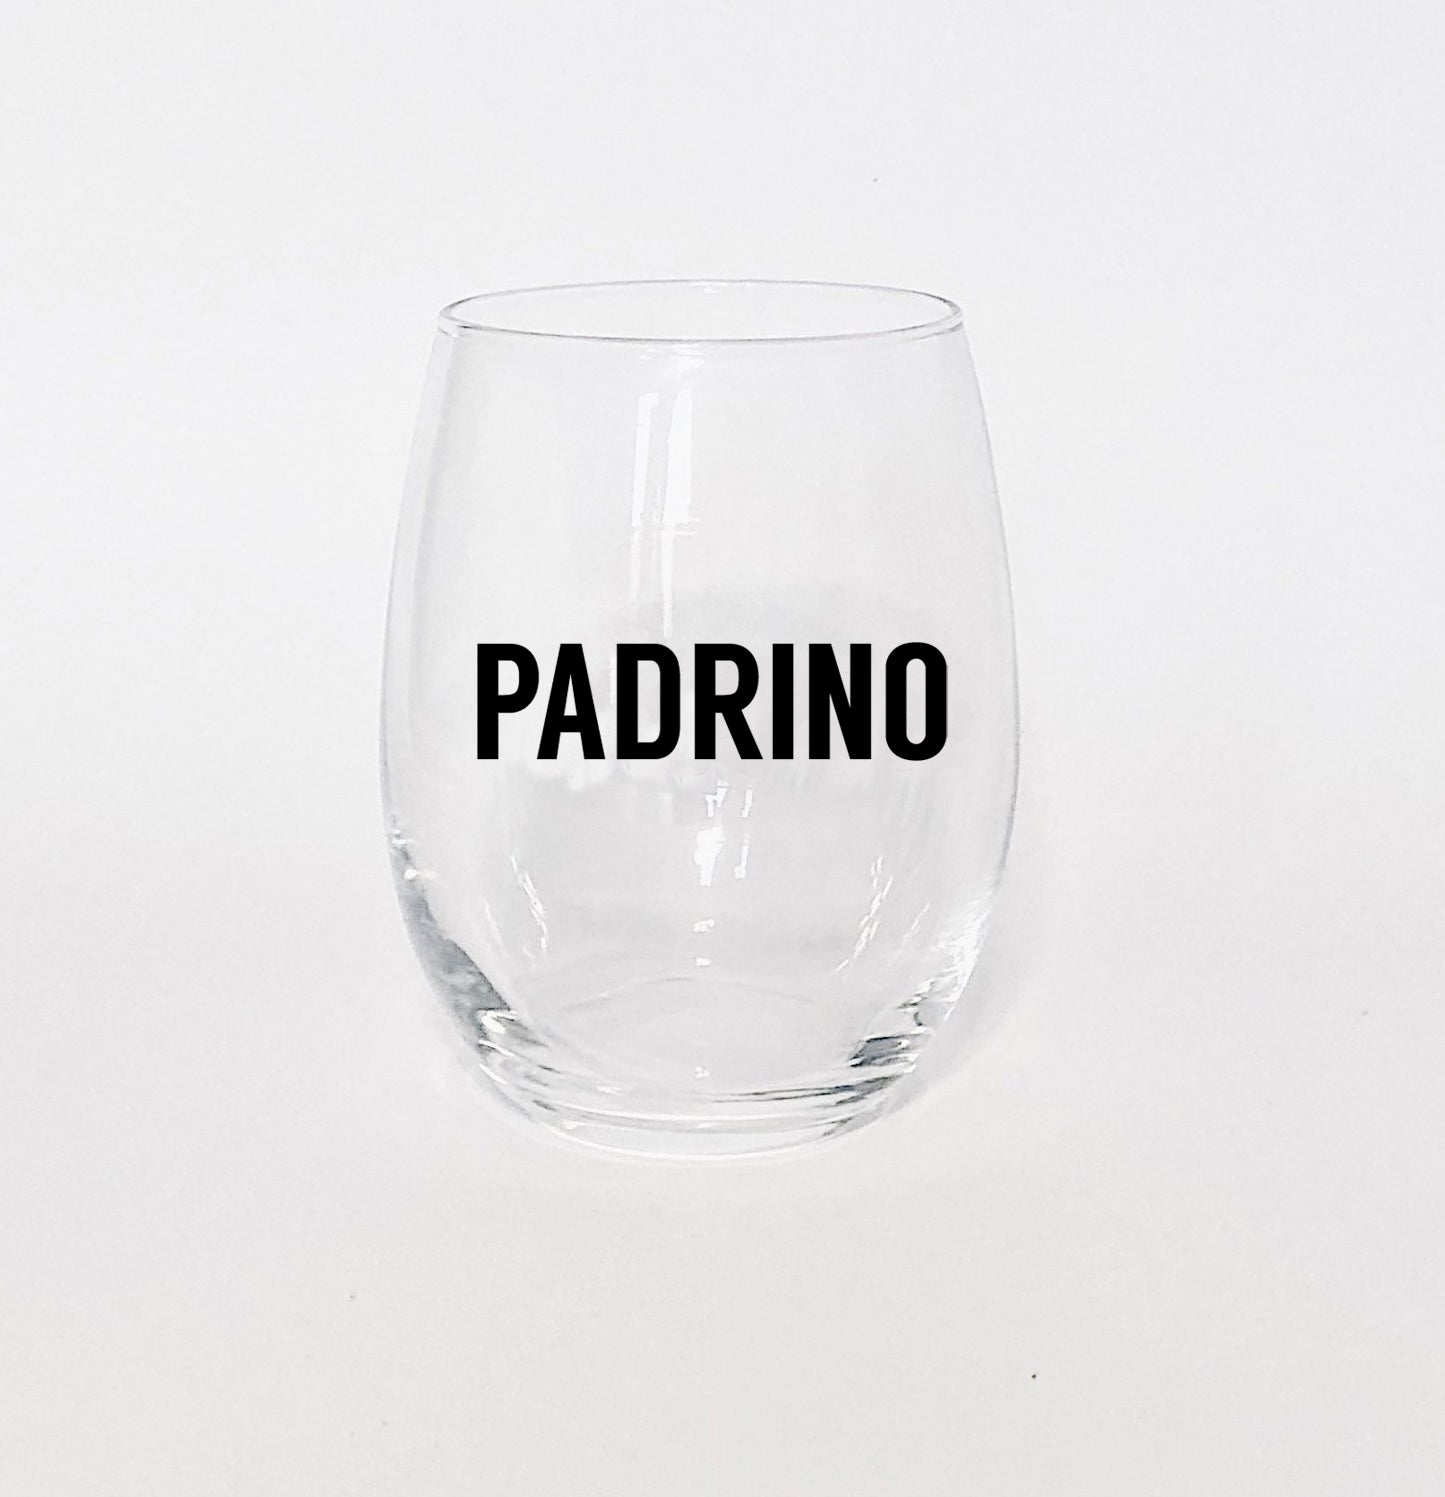 Madrina/Padrino Wine Glass